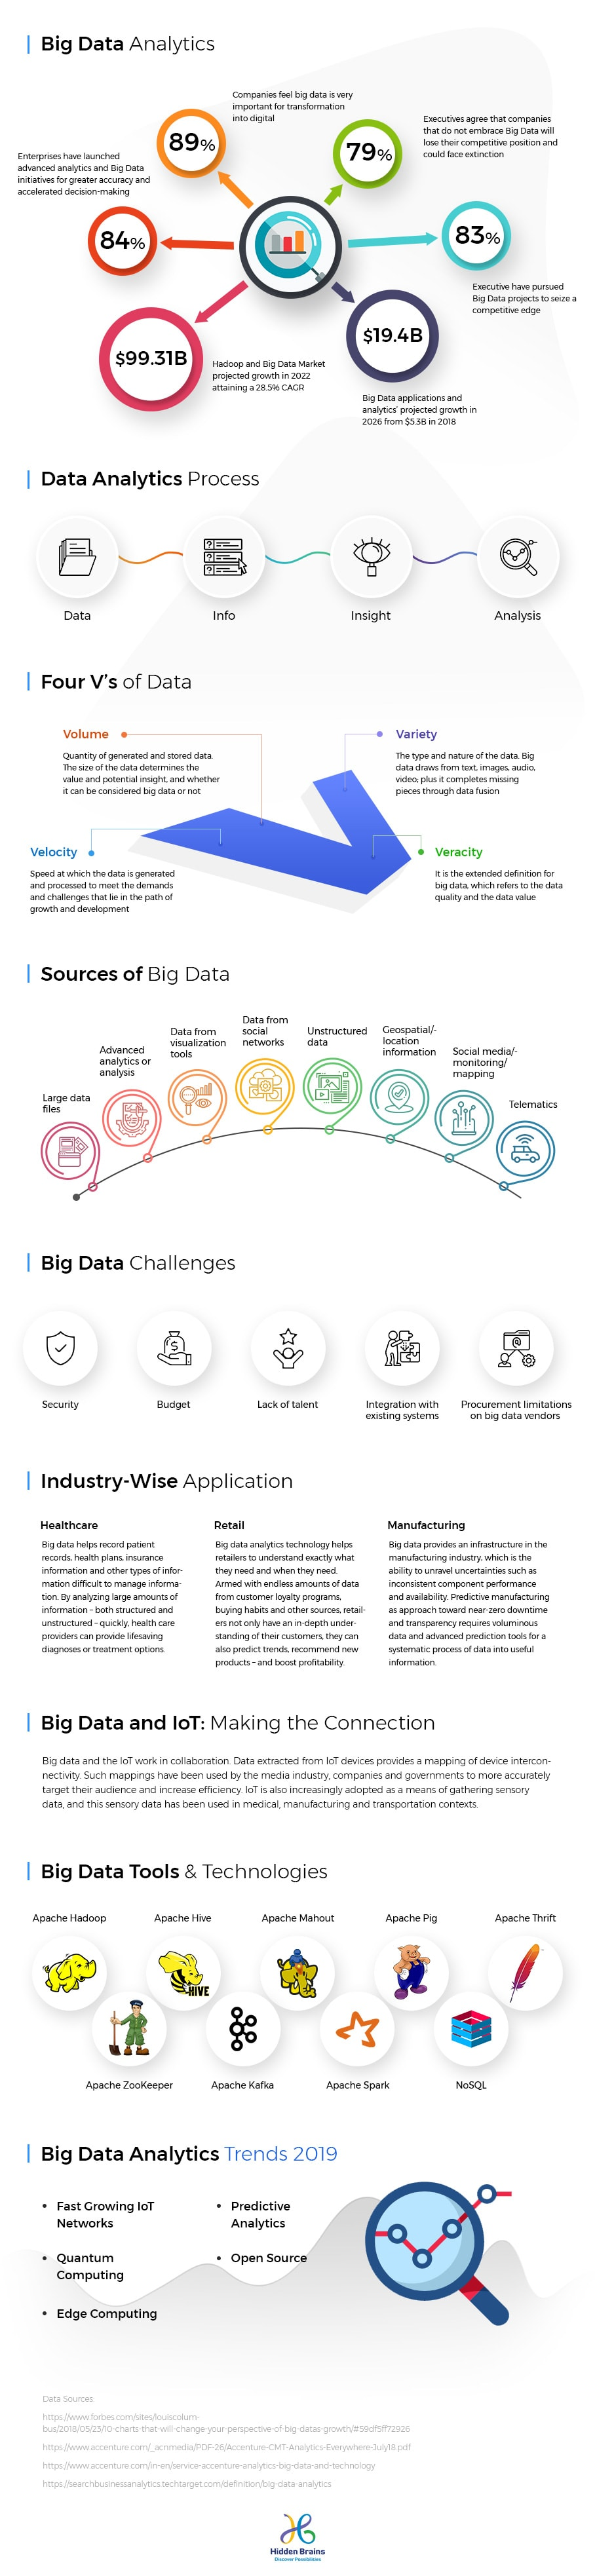 Infographic: Big Data Analytics for Enterprise